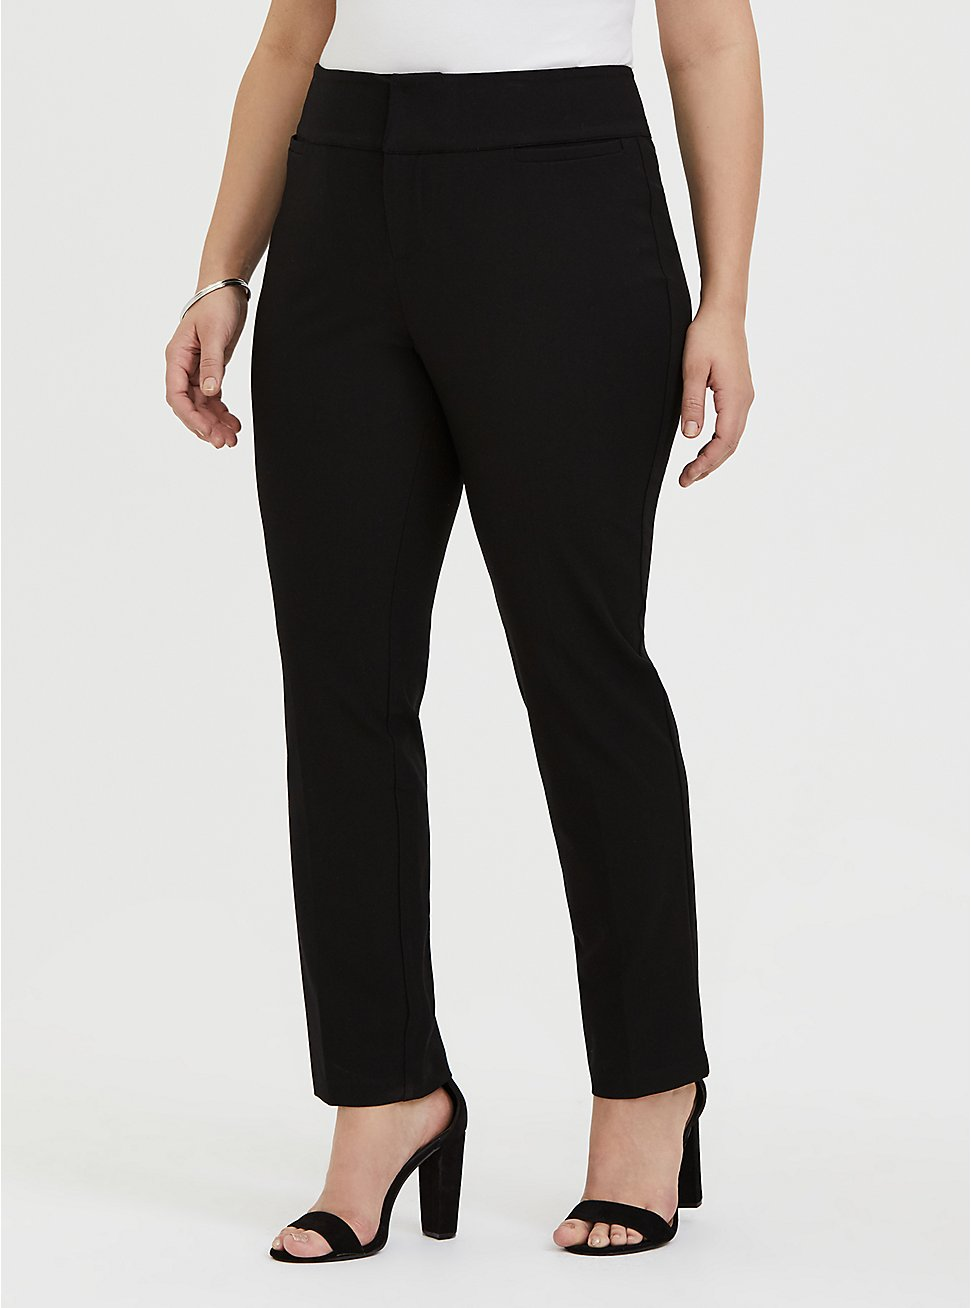 Plus Size Structured Twill Straight Leg Pant - Black, DEEP BLACK, hi-res